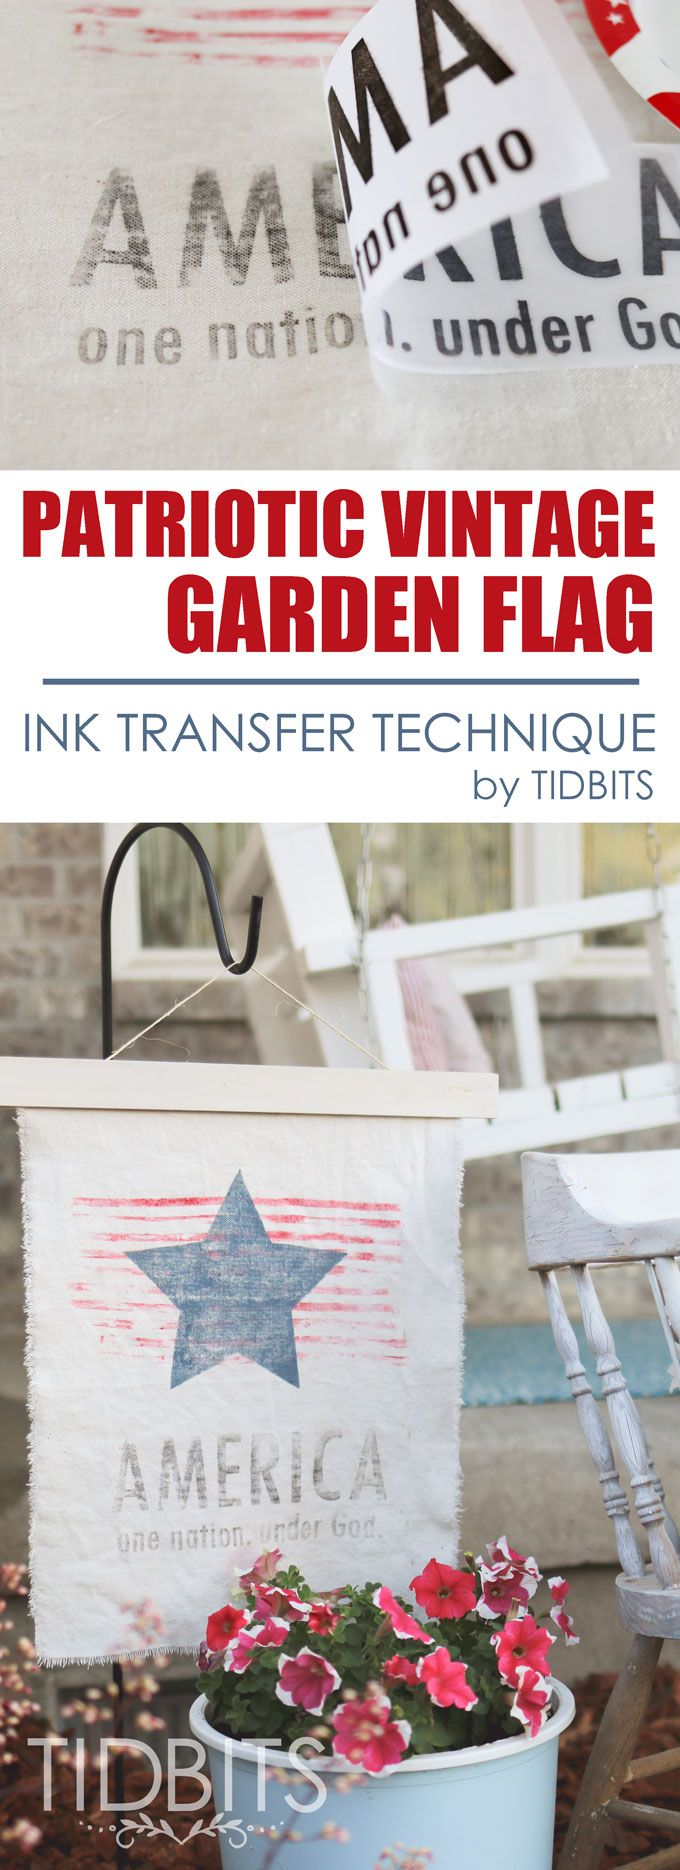 Patriotic Vintage Garden Flag tutorial, featuring an awesome ink transfer technique.